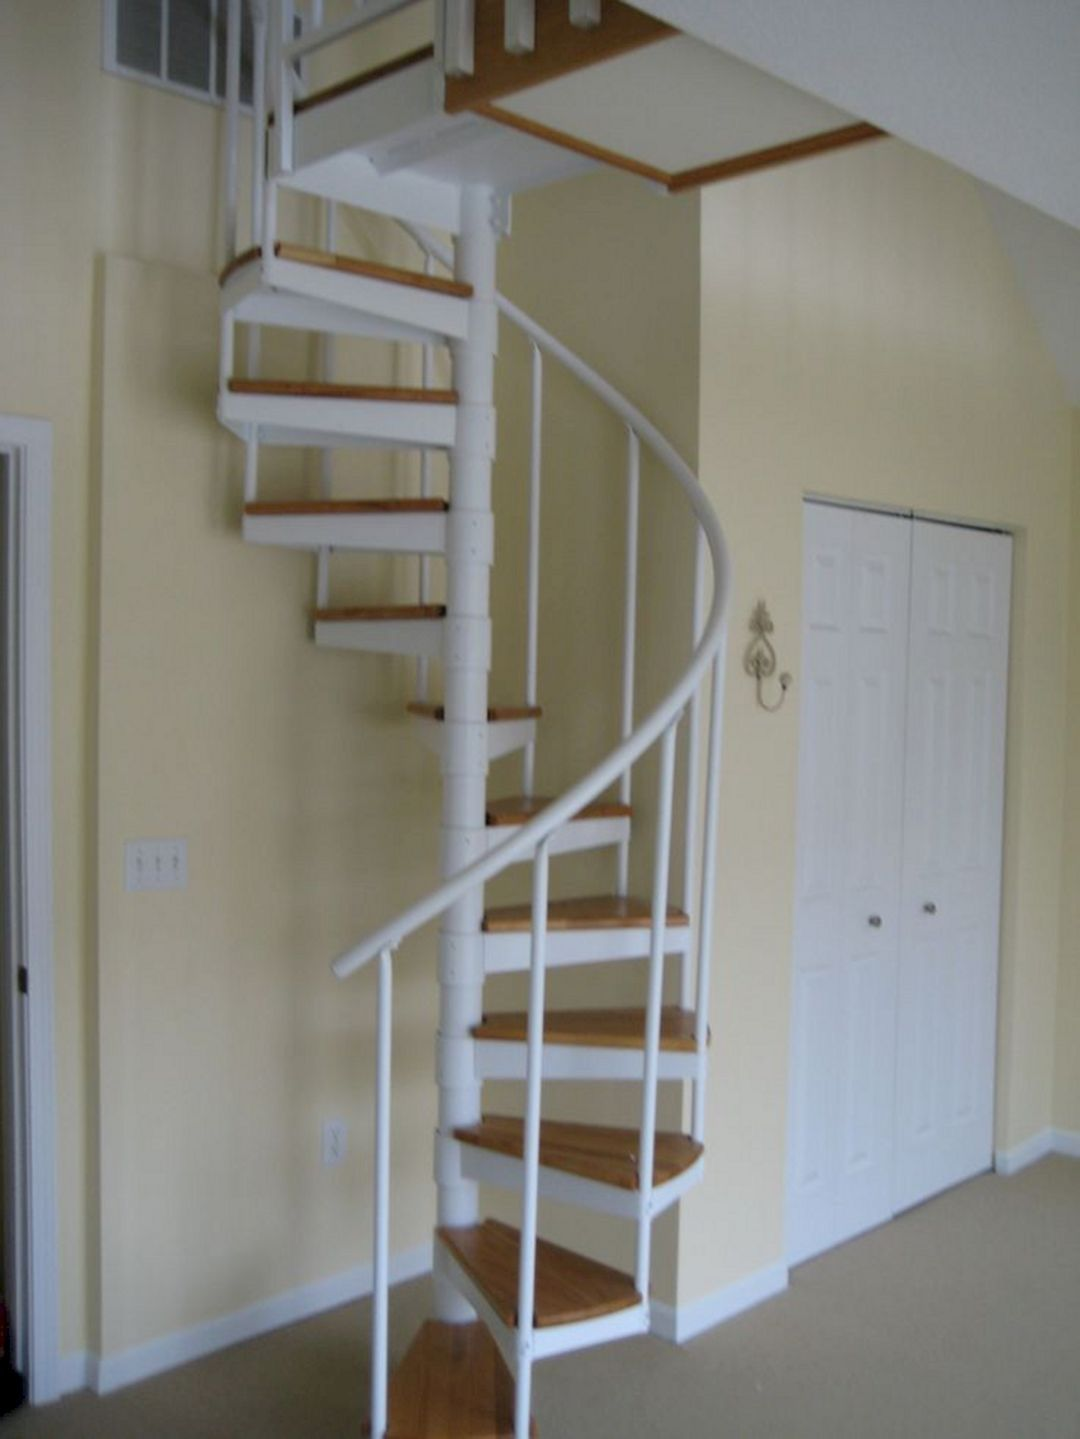 10 Best Ladder Design Inspirations For Beautiful Tiny Home Tiny House Stairs Tiny House Loft Loft Stairs